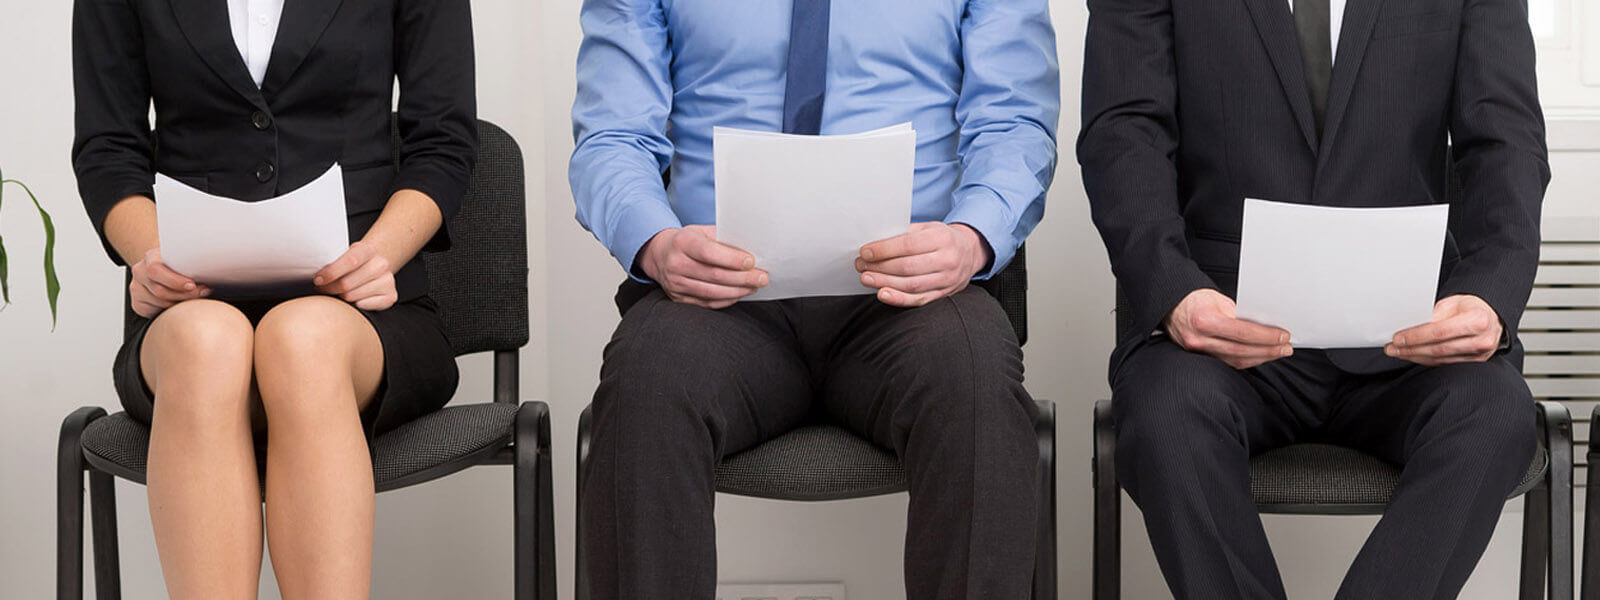 Pre-employment Employees waiting to be interviewed through handwriting analysis